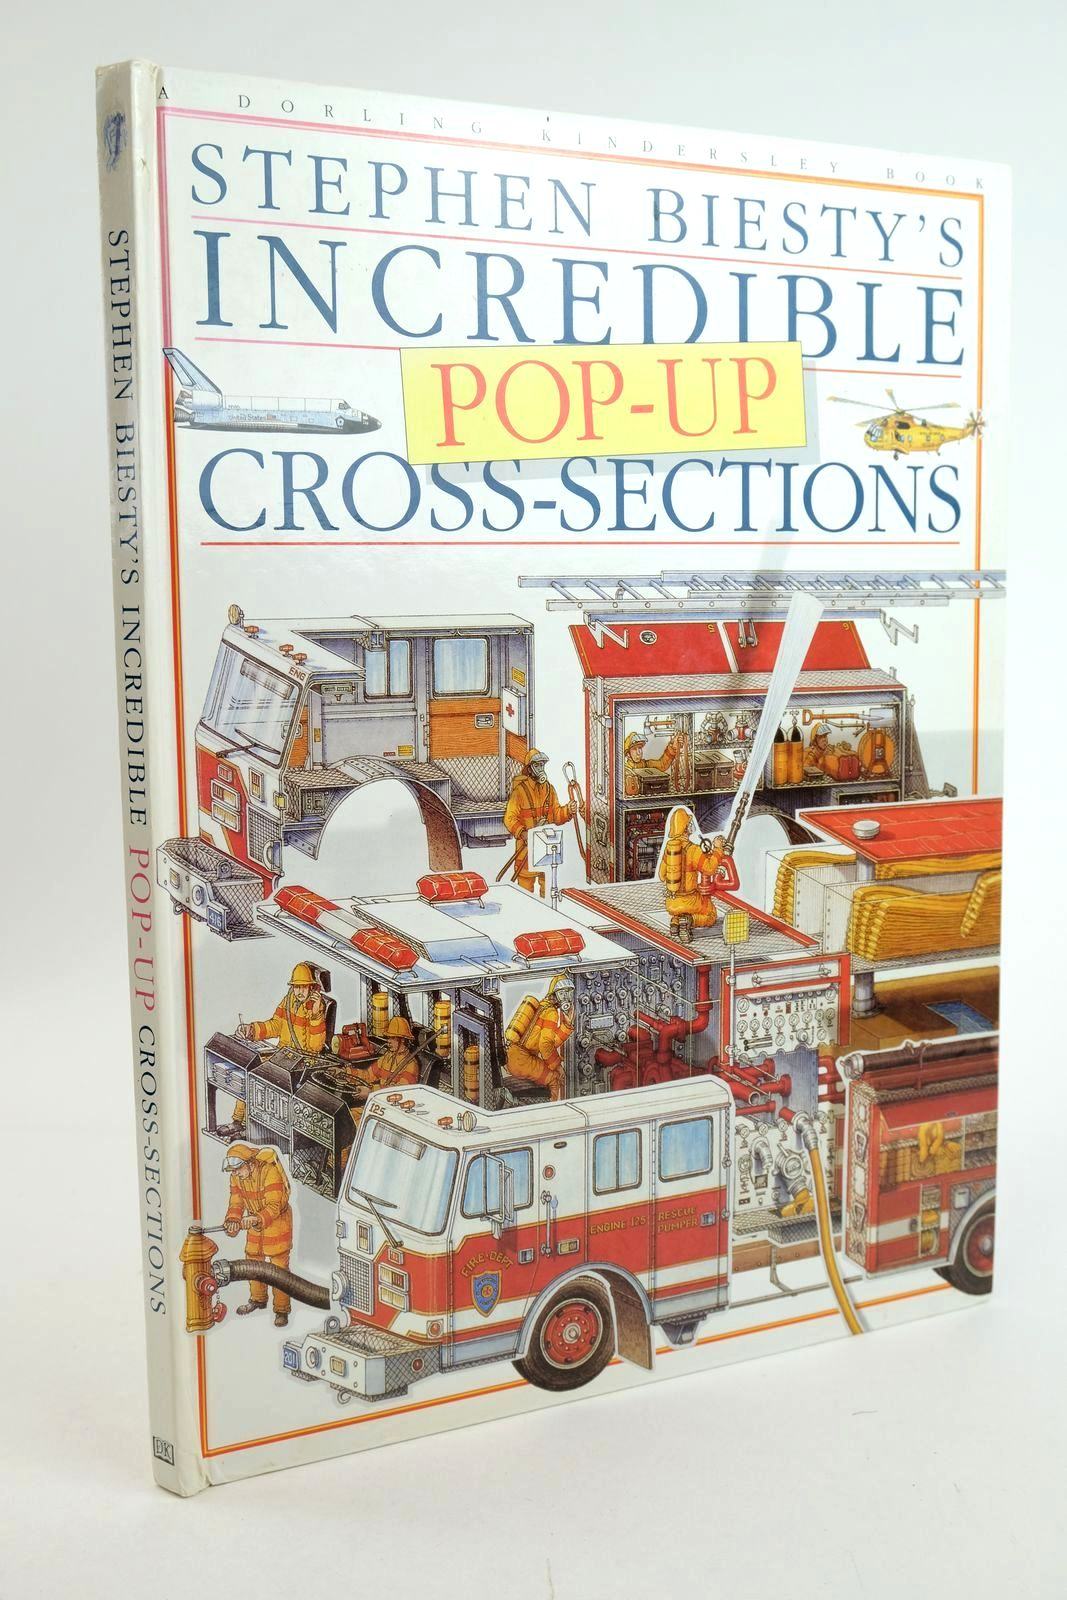 Photo of STEPHEN BIESTY'S INCREDIBLE POP-UP CROSS-SECTIONS written by Biesty, Stephen published by Dorling Kindersley (STOCK CODE: 1319103)  for sale by Stella & Rose's Books